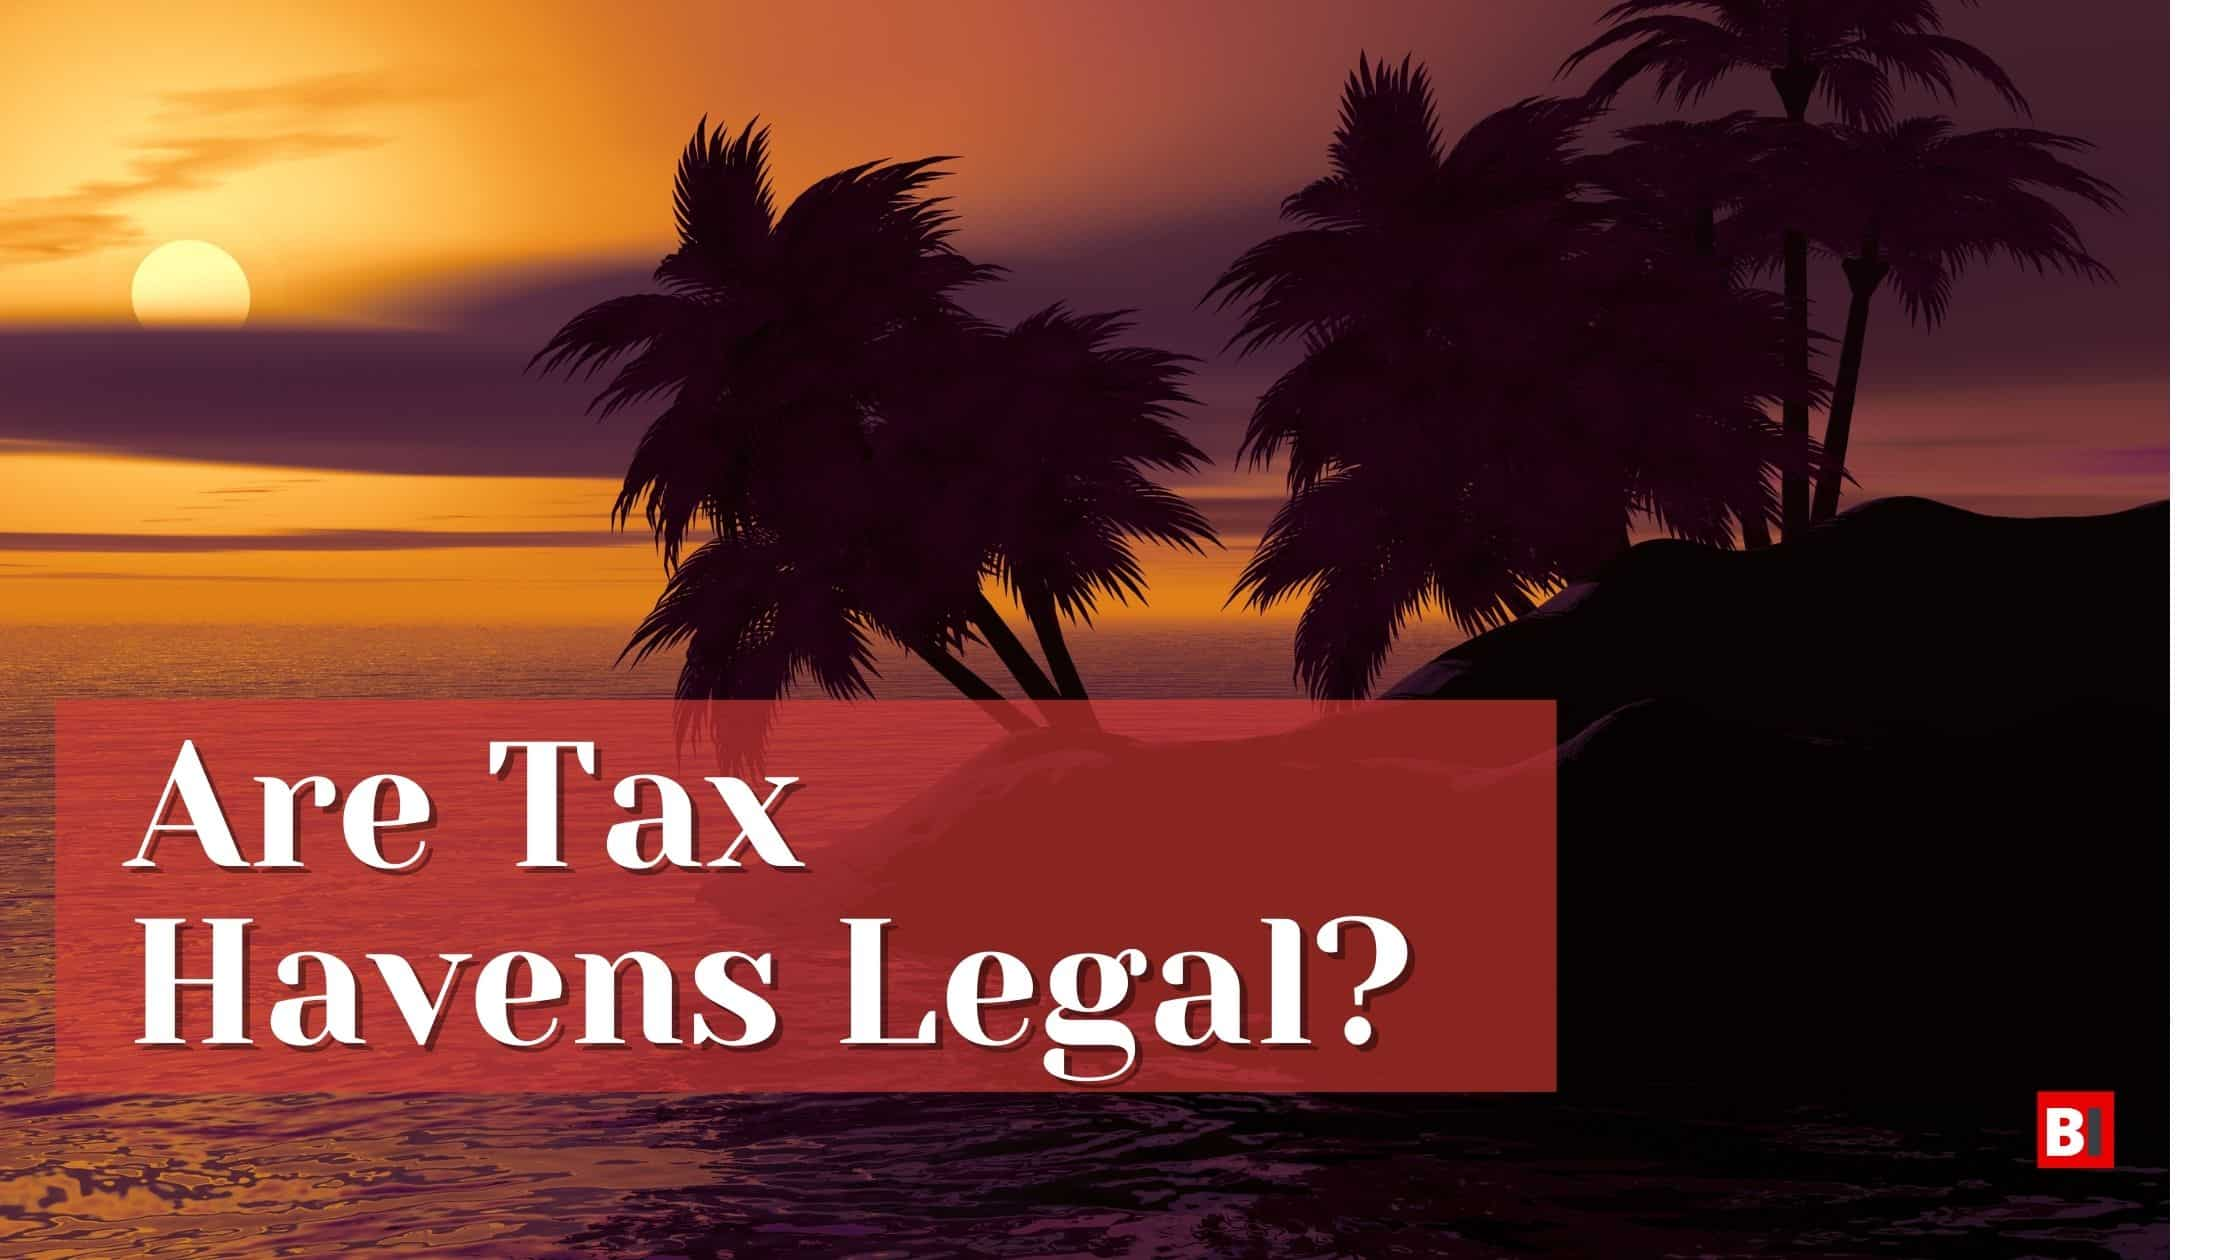 Are Tax Havens Legal?